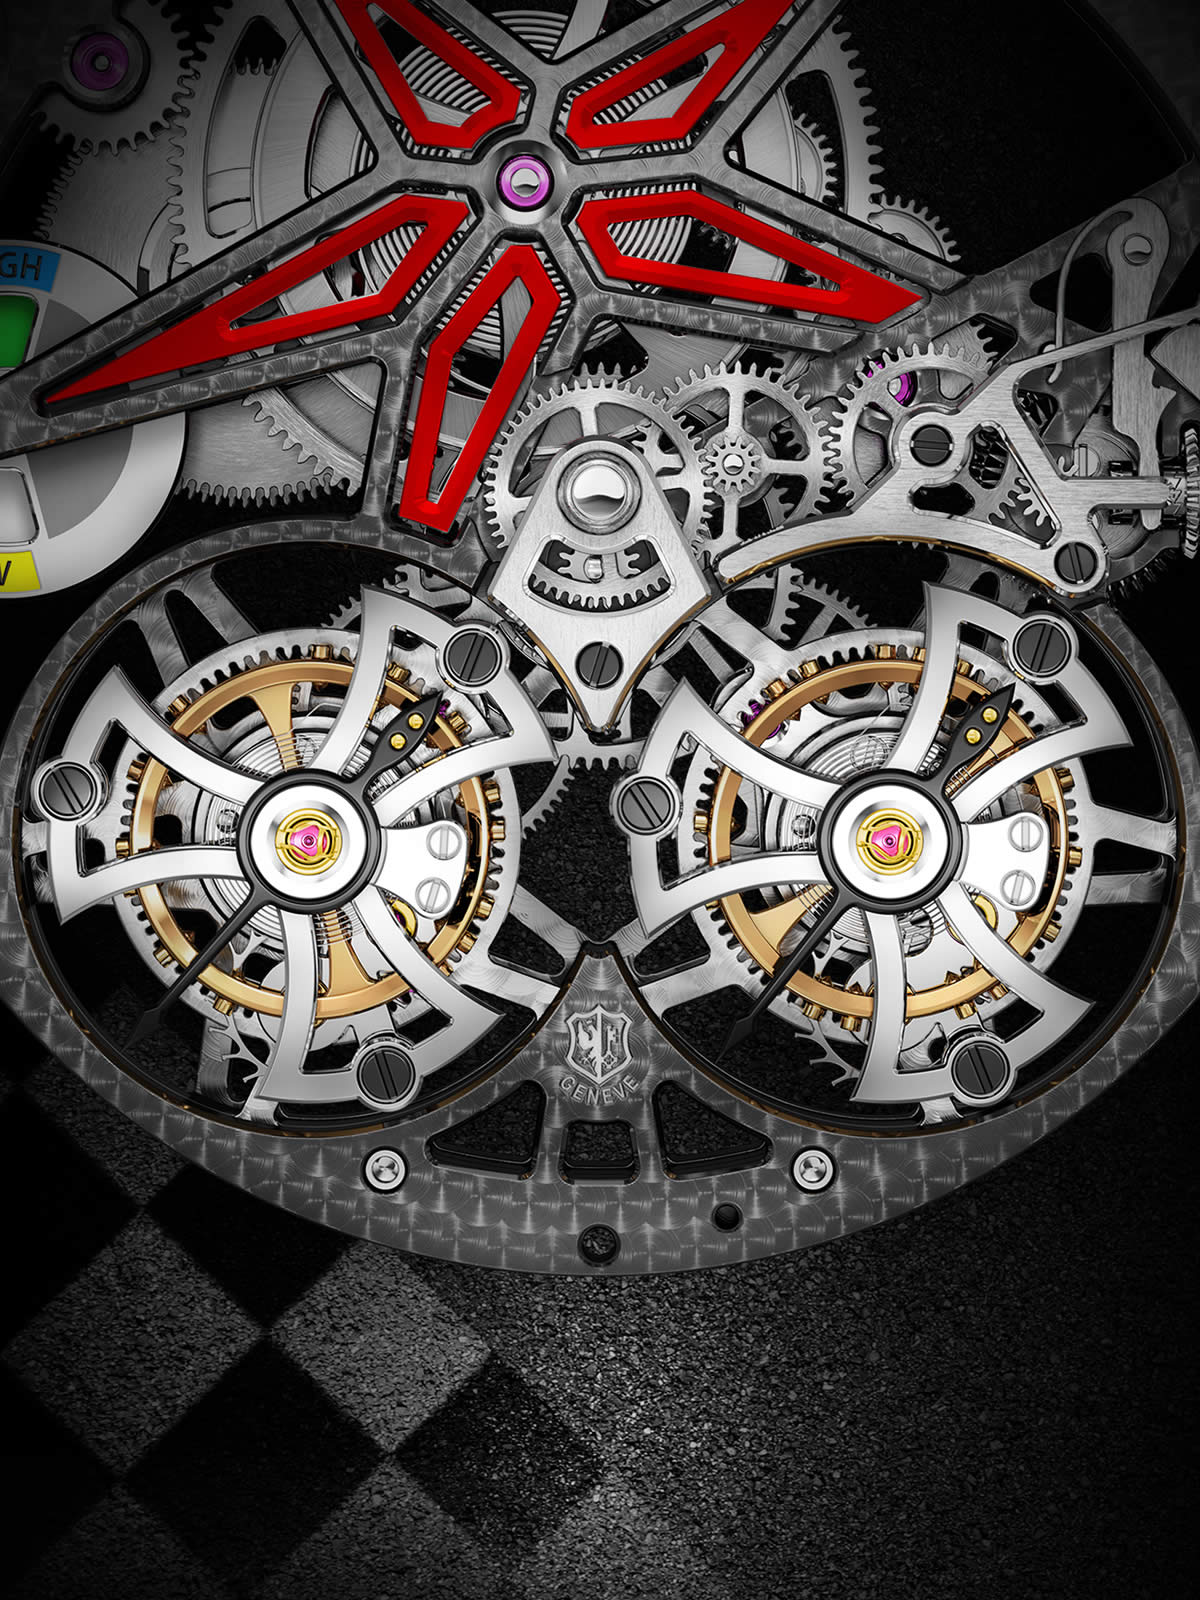 rddbex0657-roger-dubuis-excalibur-spider-pirelli-double-flying-tourbillon-2-.jpg